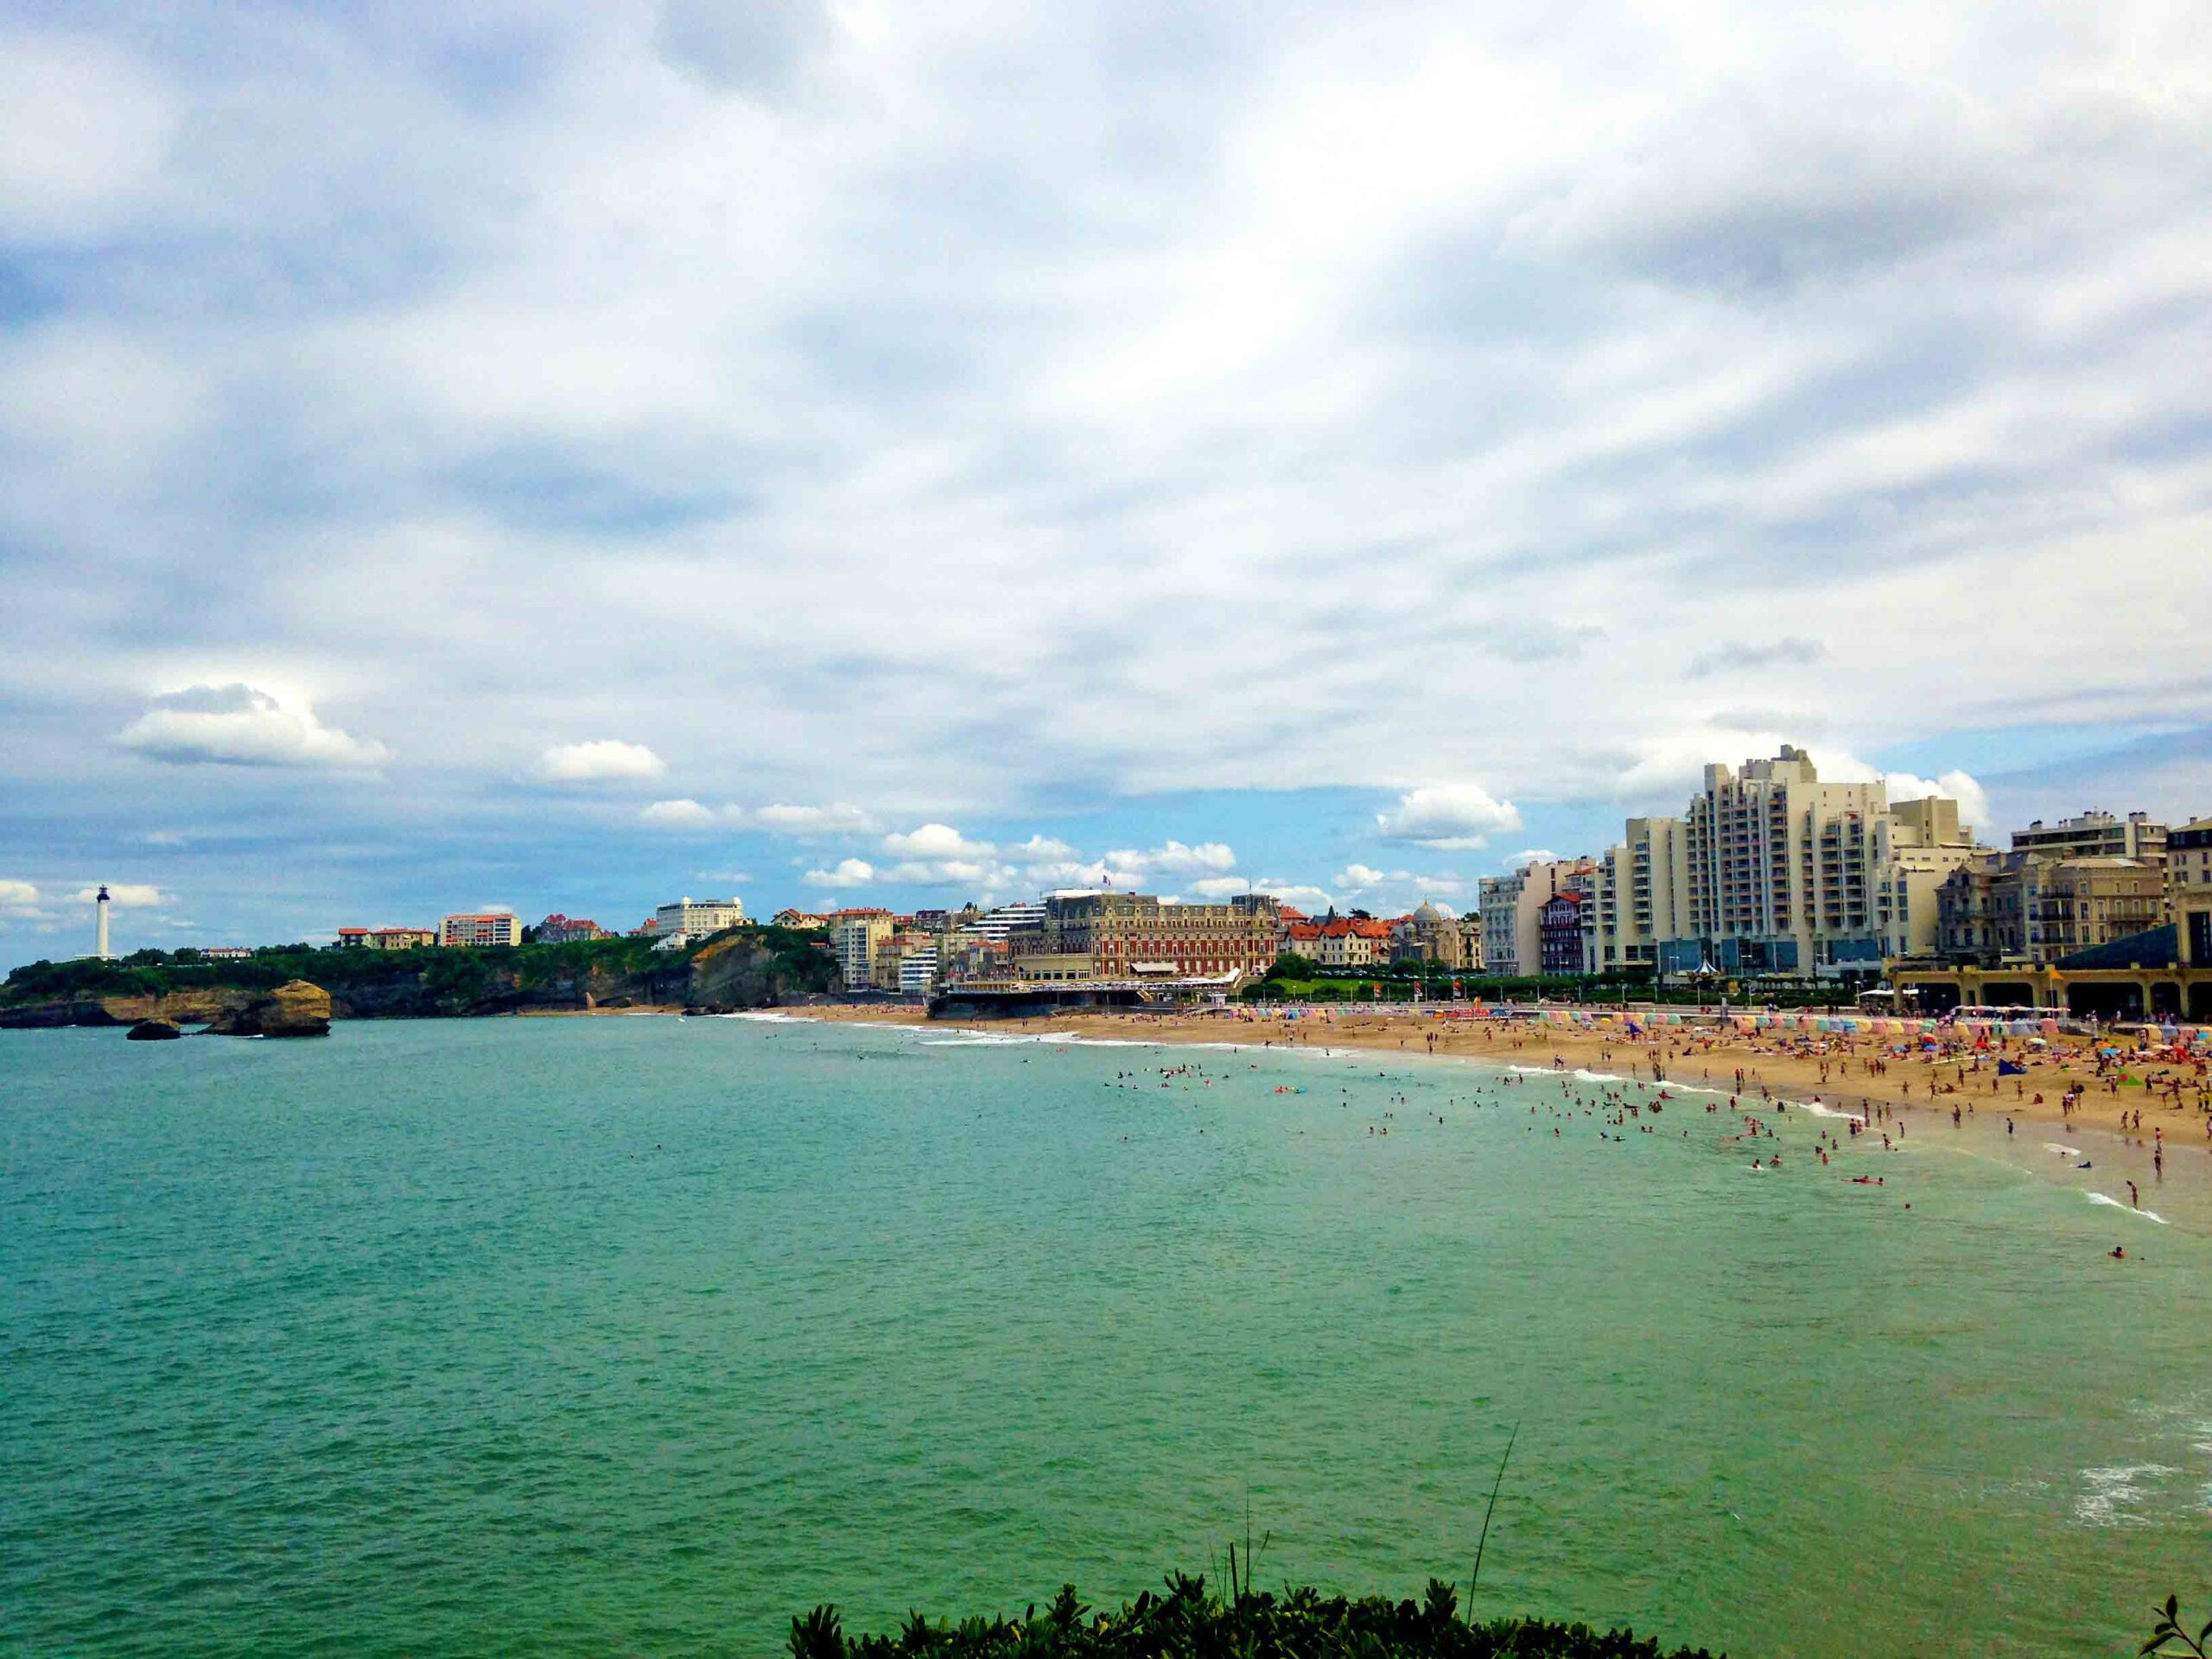 Beach view of Biarritz France